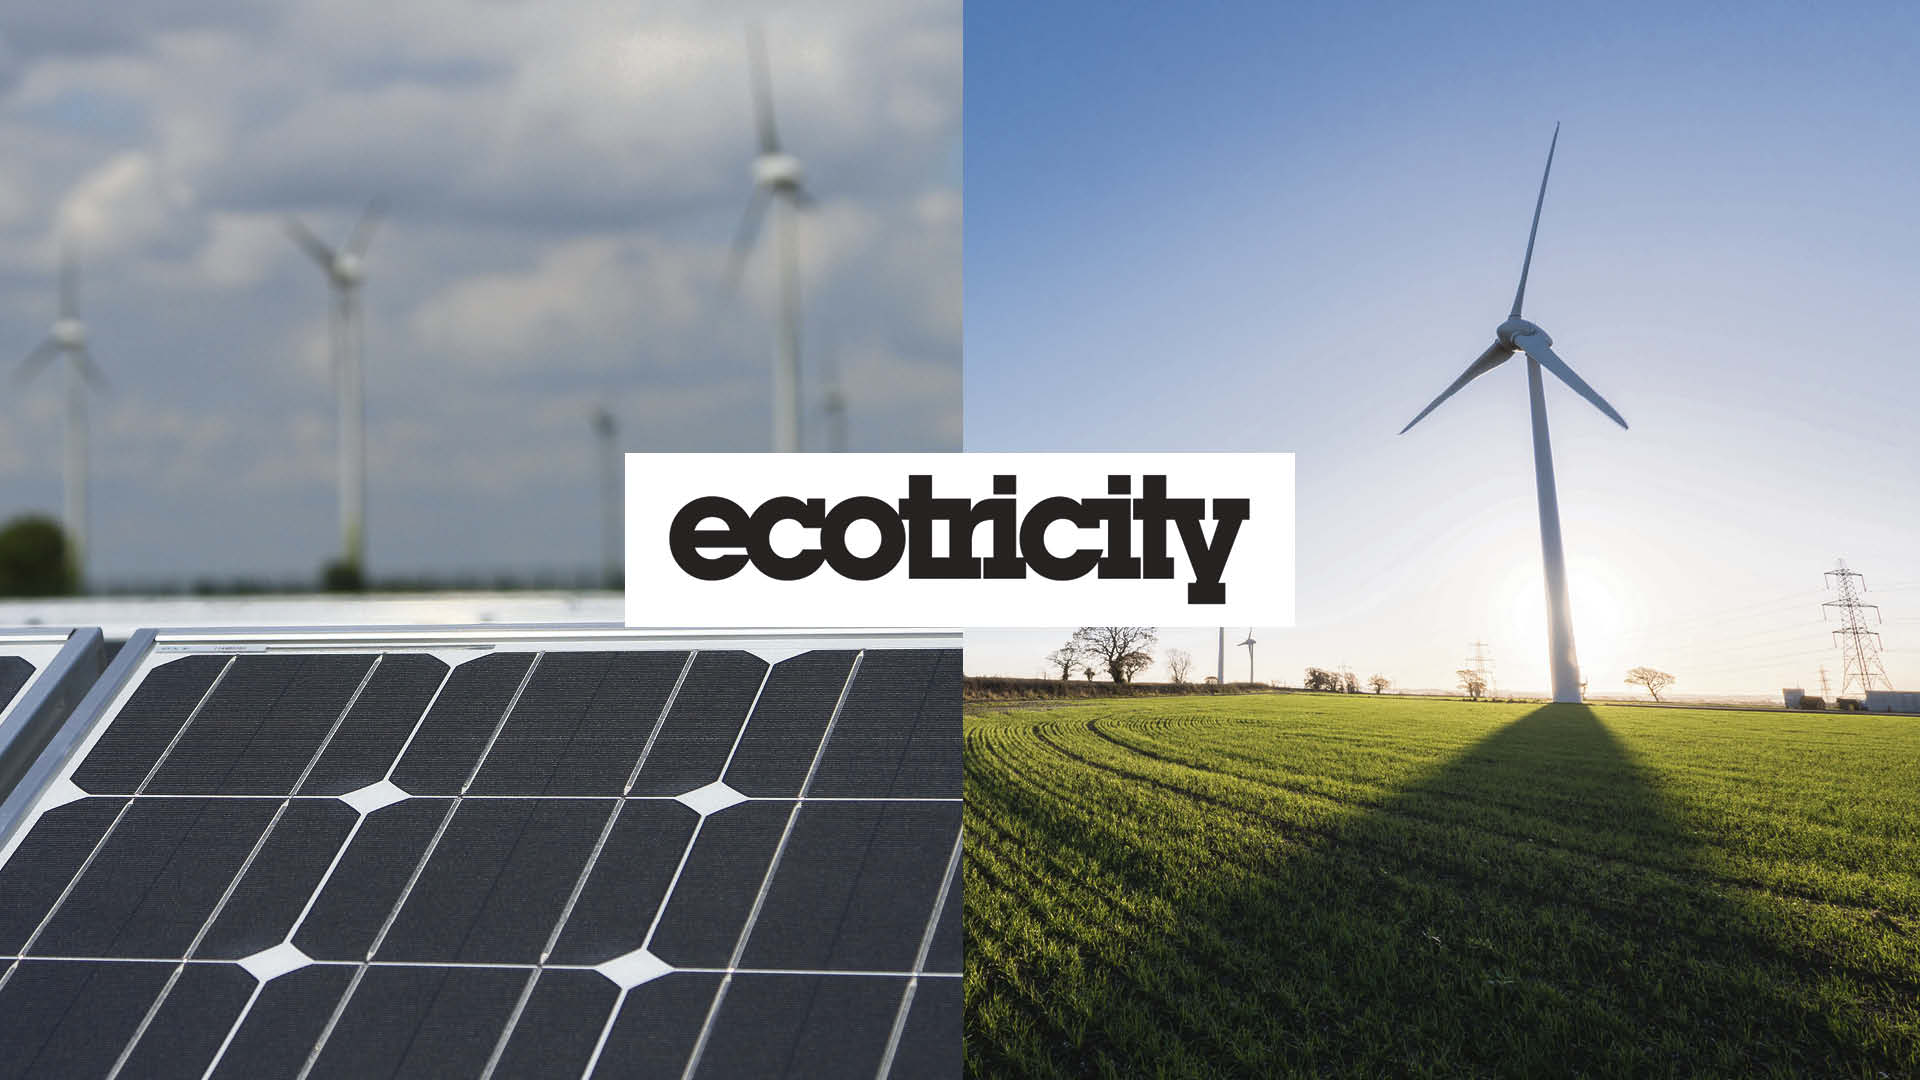 Win John Lewis vouchers with Ecotricity, the UK's greenest energy company Worth £200!